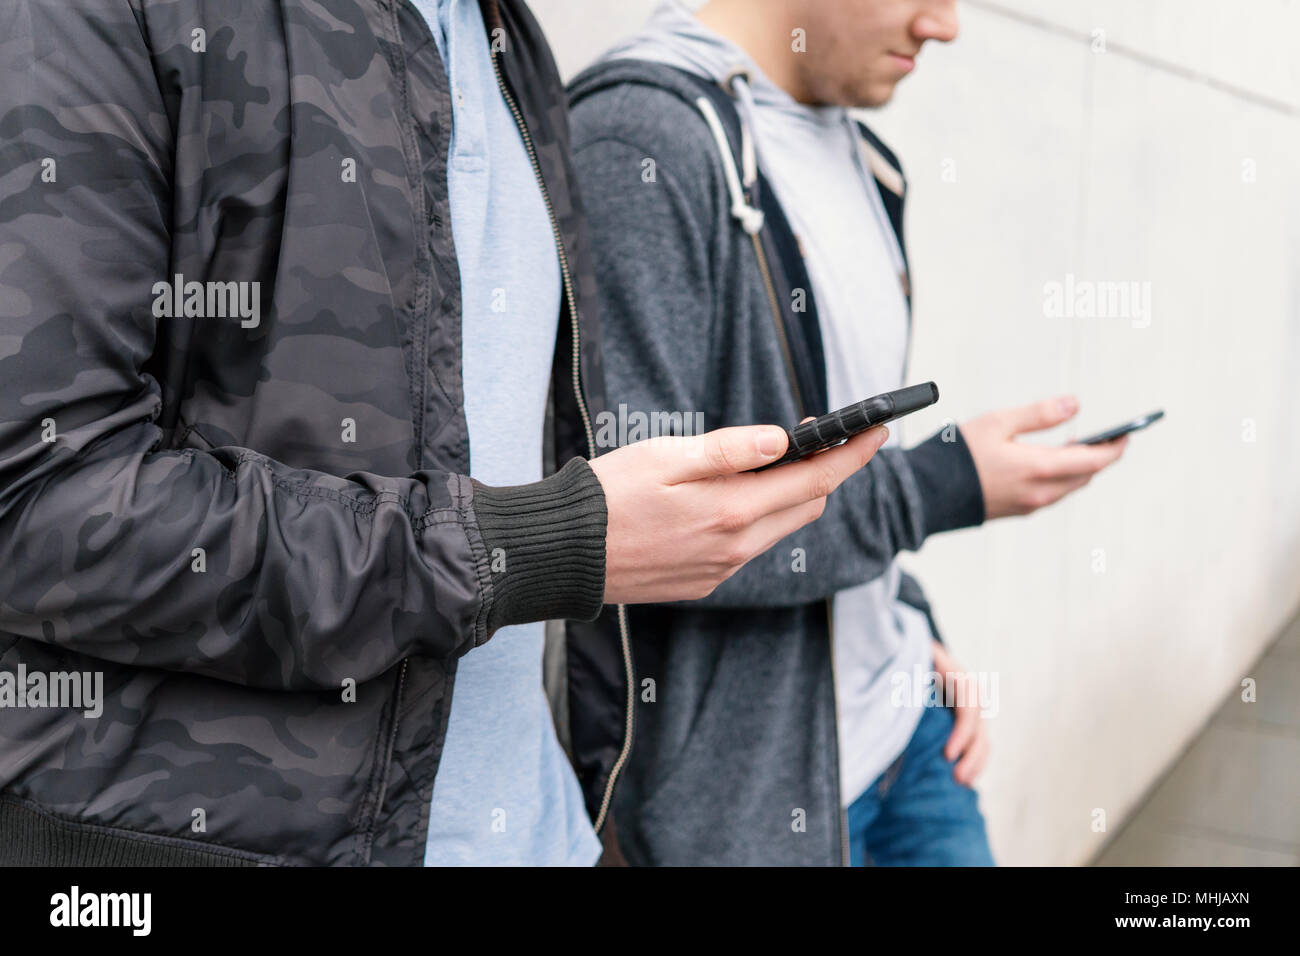 two antisocial mobile phone addicted male teenagers using smartphone, technology concept, leaning against wall with copy space - Stock Image